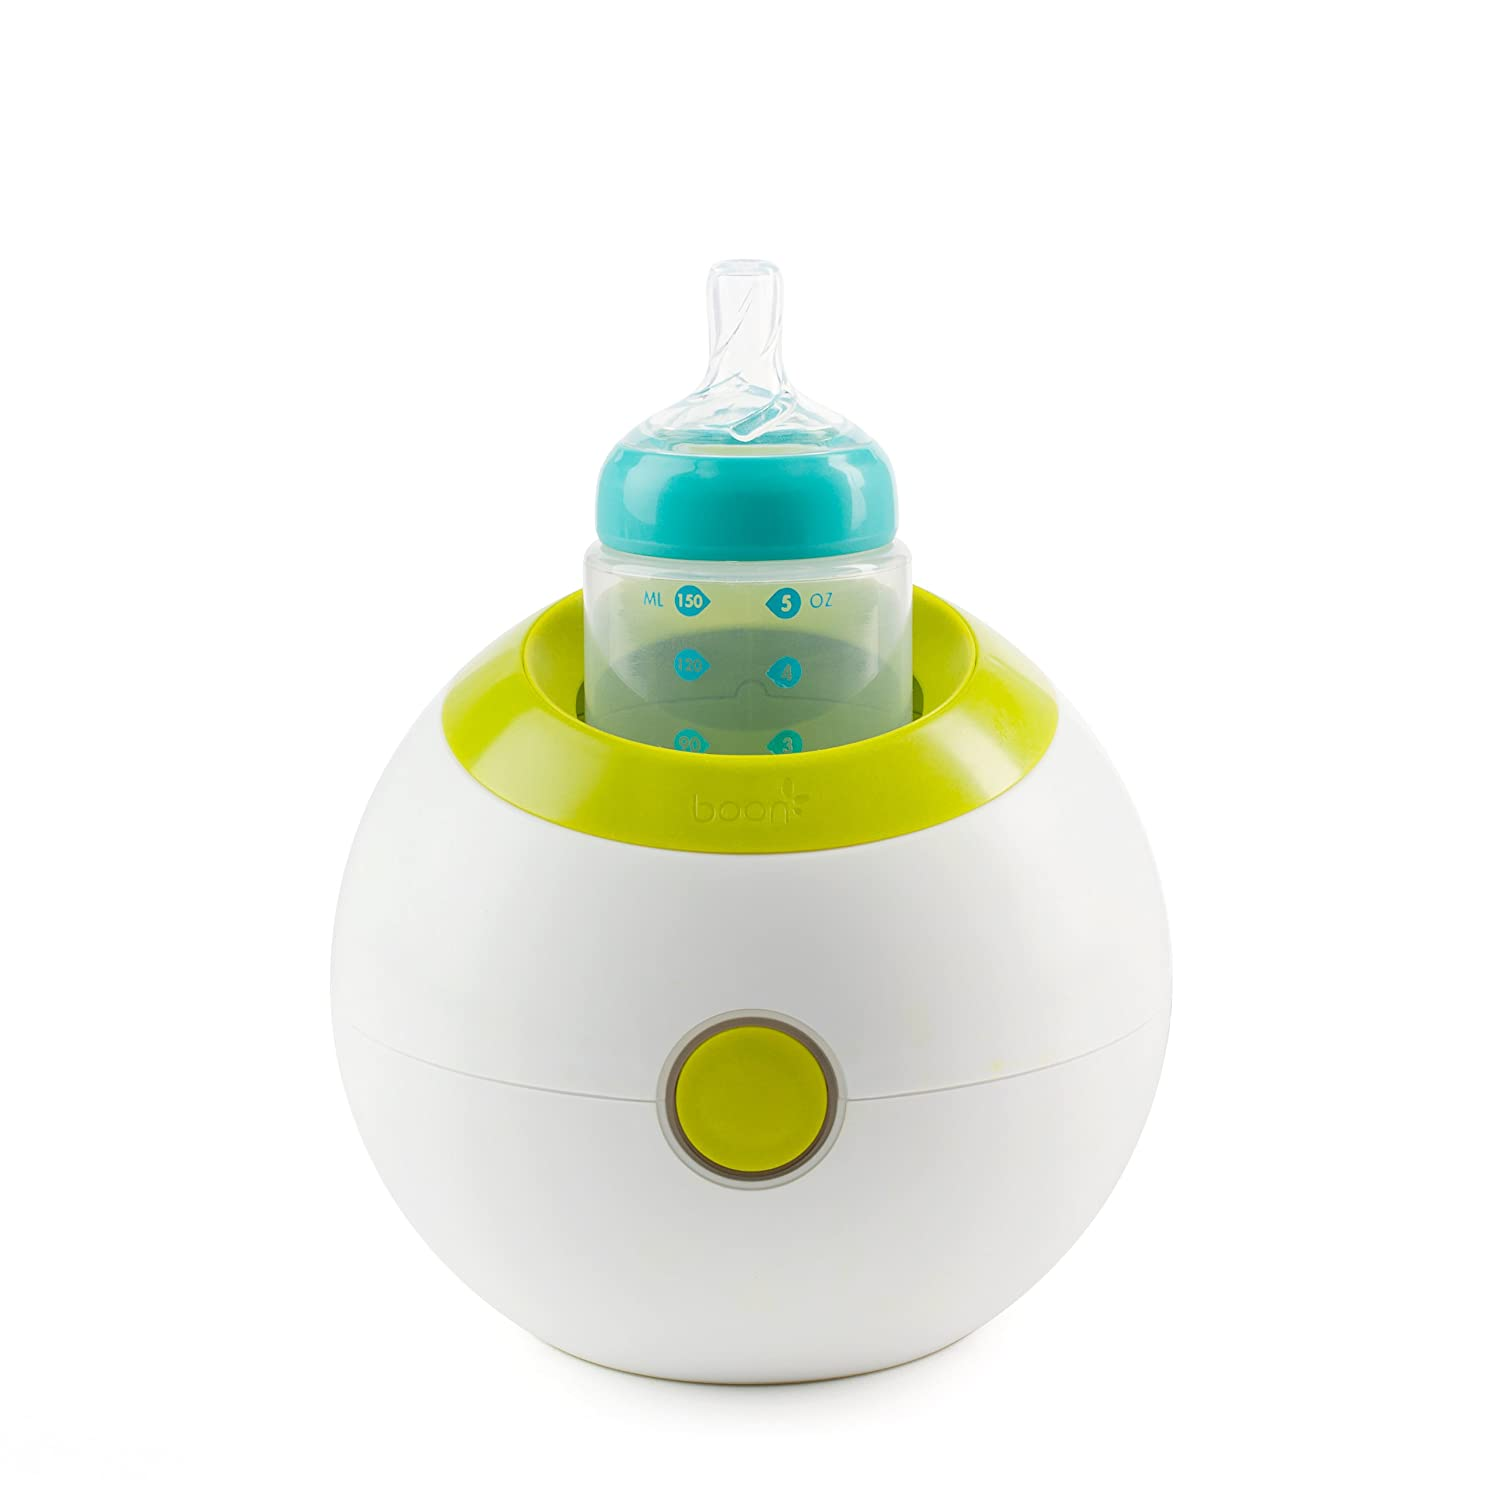 Top 8 Best Baby Bottle Warmers Reviews in 2019 3